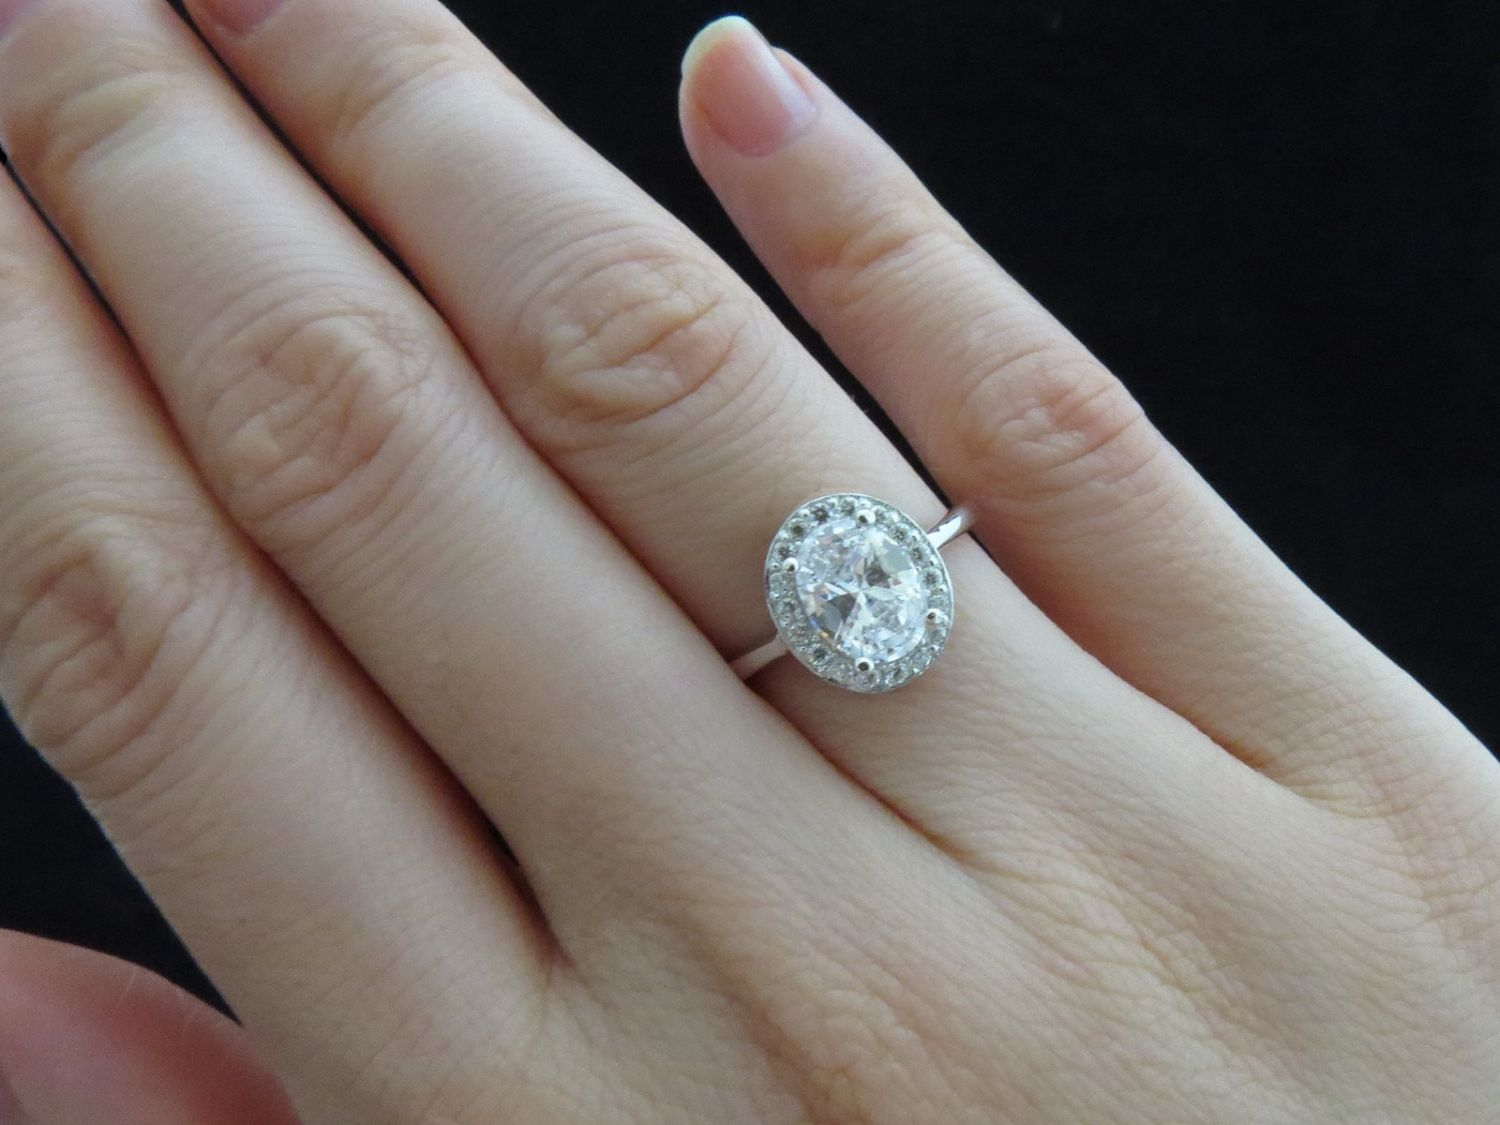 2 Carat Oval Diamond Ring On Hand